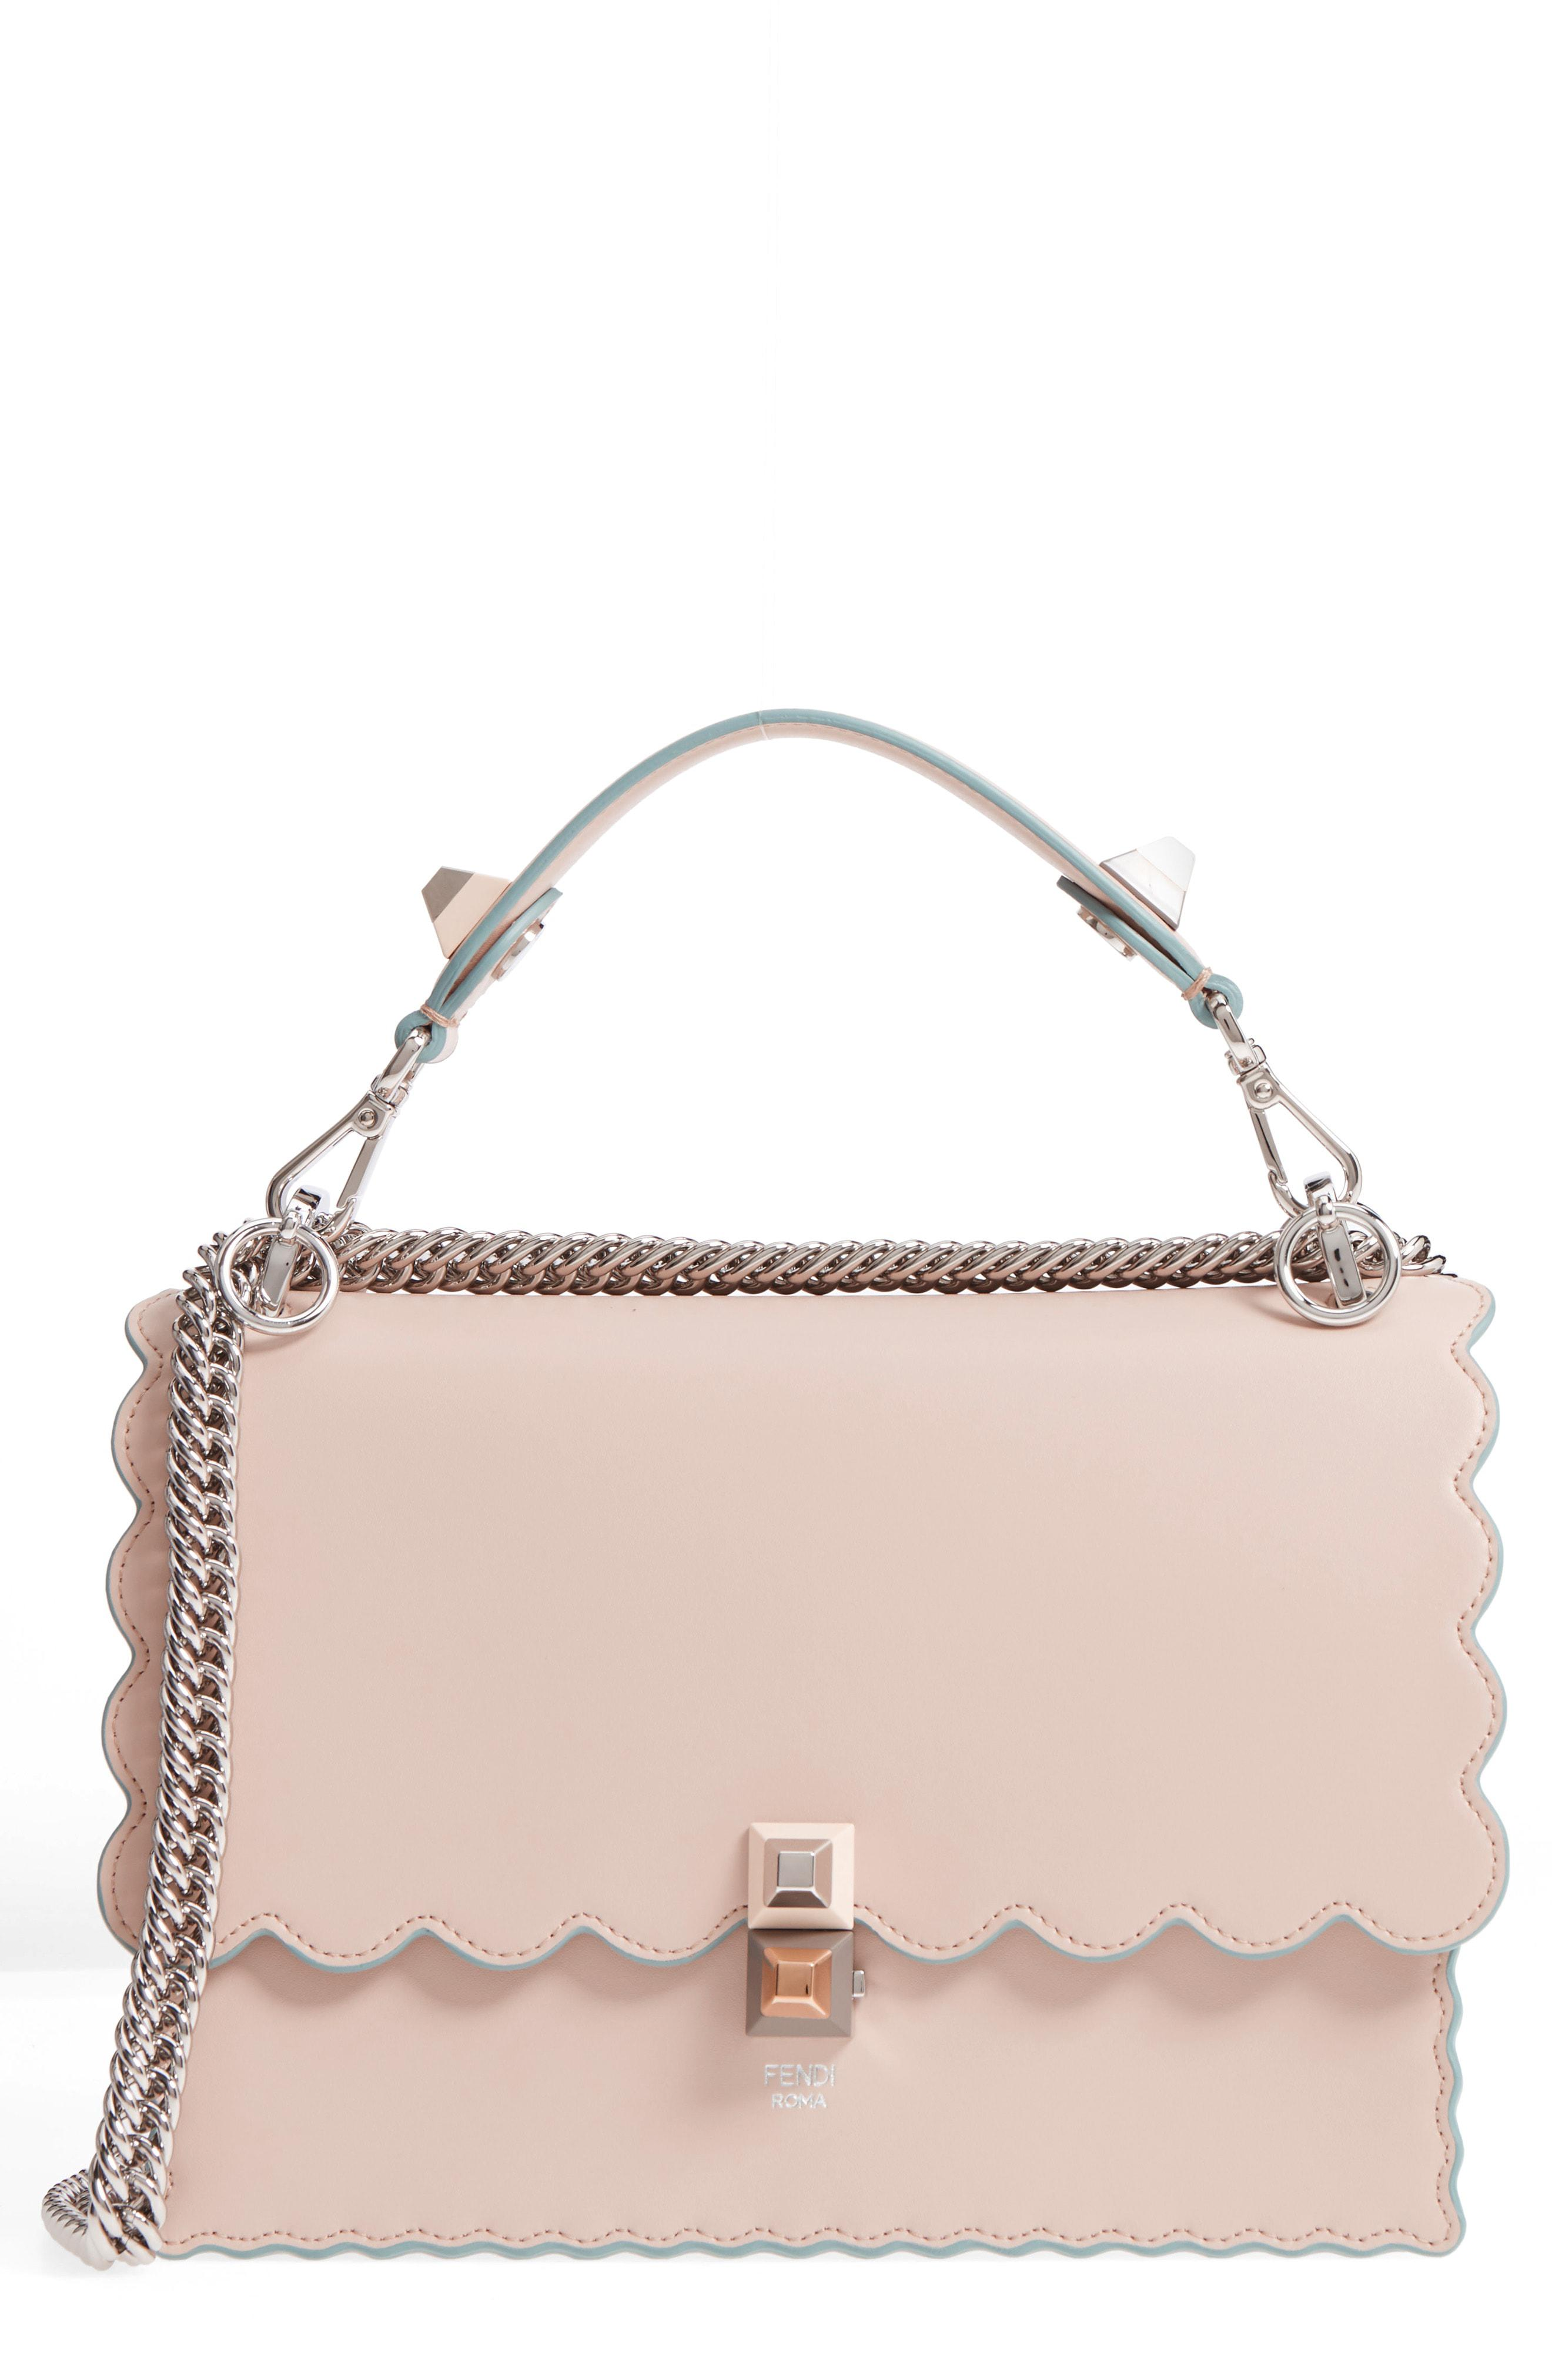 ... Lyst Fendi Kan I Scallop Leather Shoulder Bag